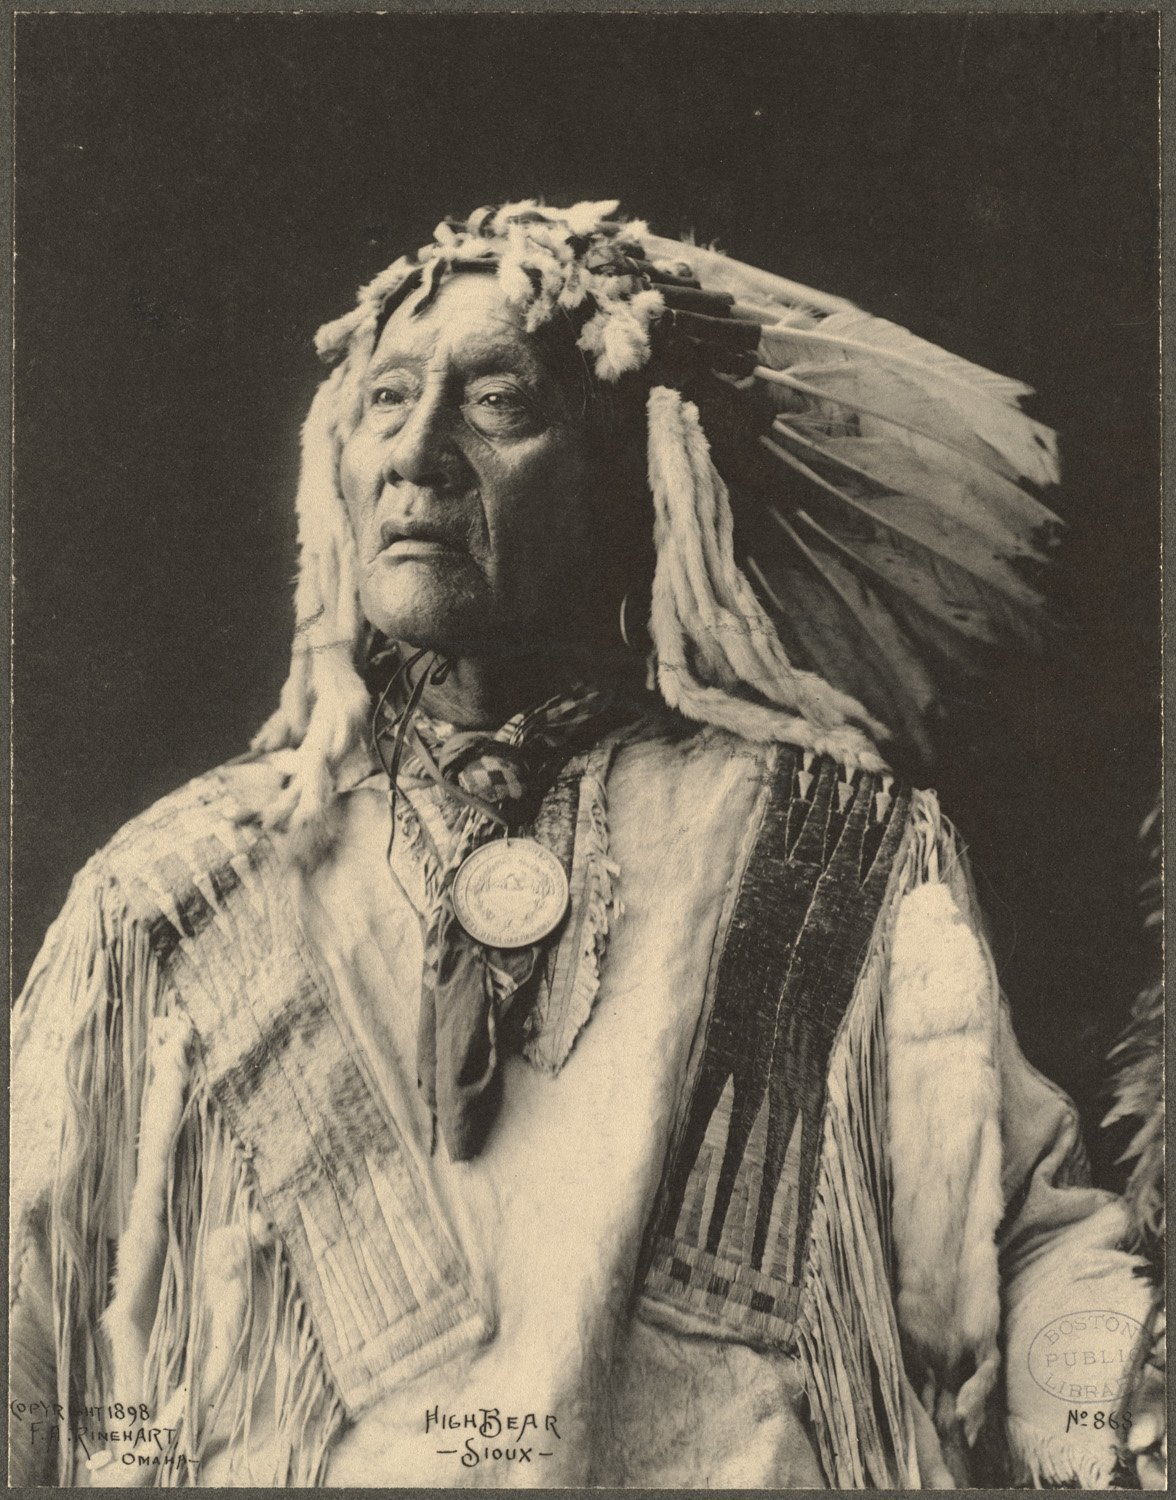 High Bear, Sioux, 1899. (Photo by Frank A. Rinehart)